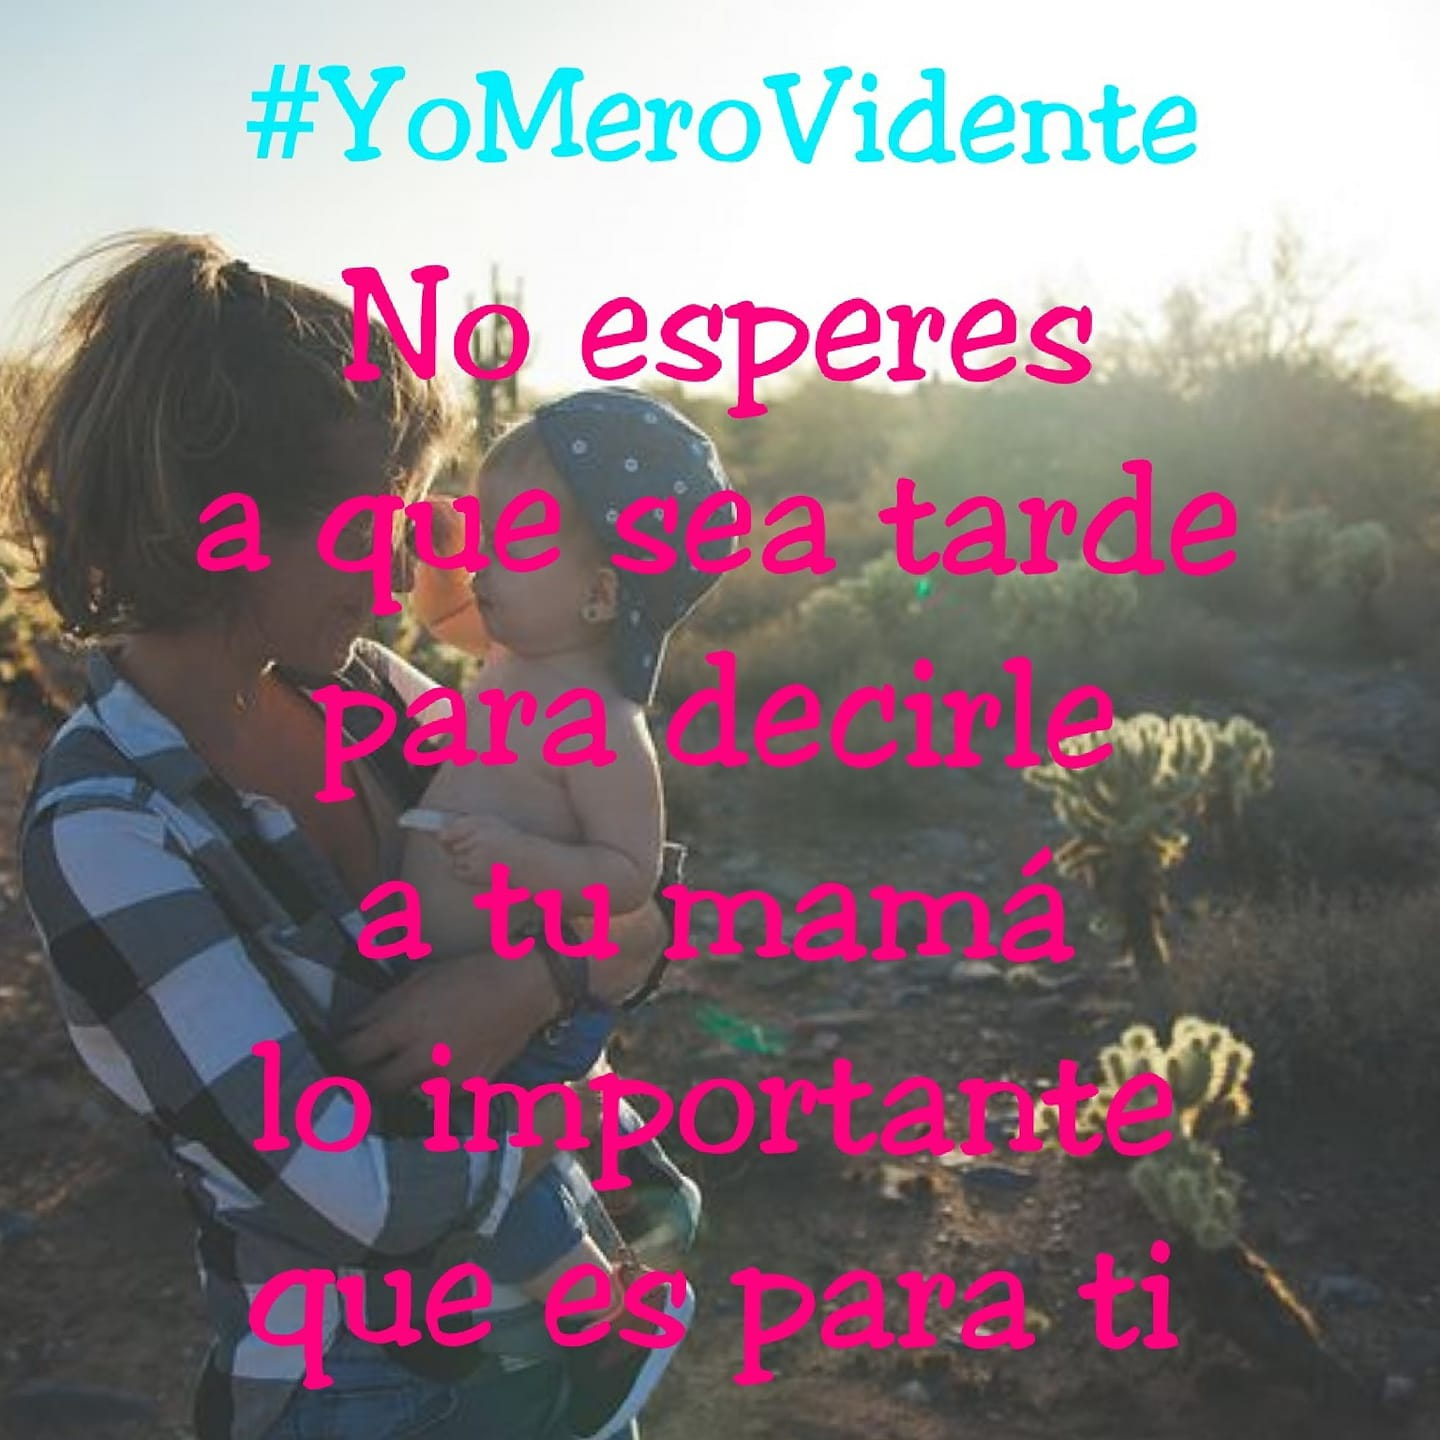 No esperes a que sea tarde...